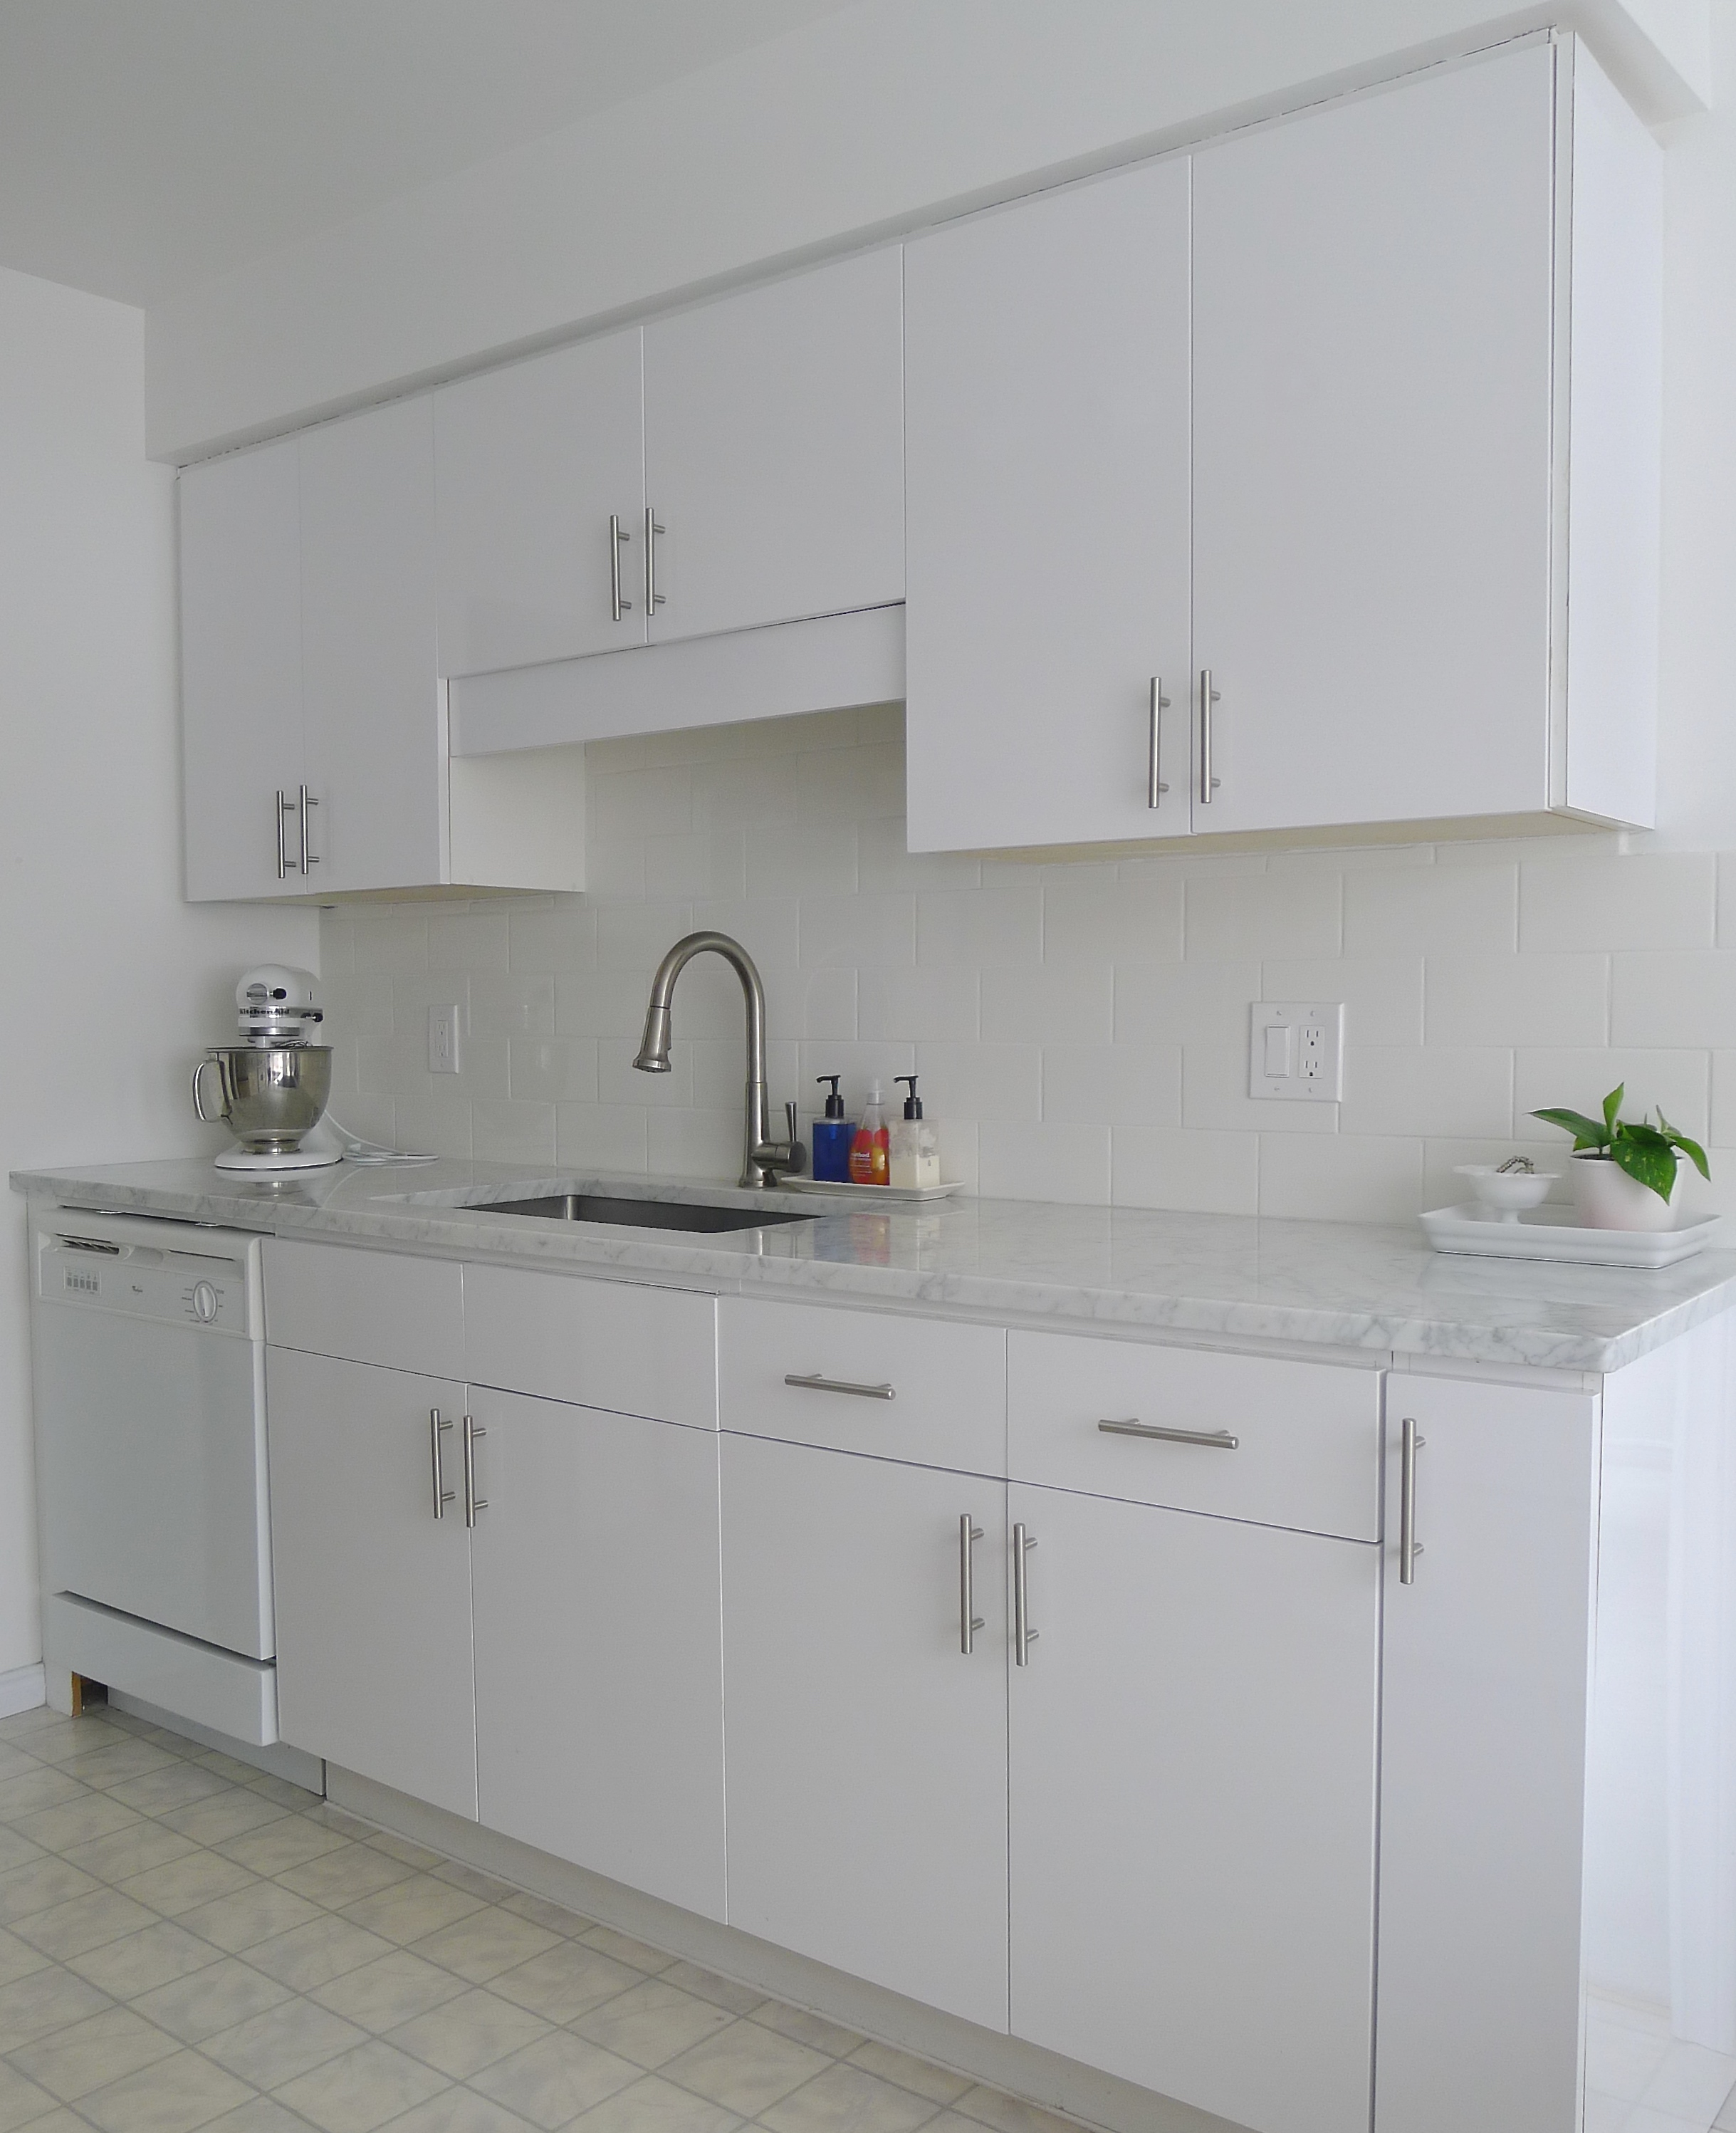 Kitchen Backsplash Kijiji: White Cabana